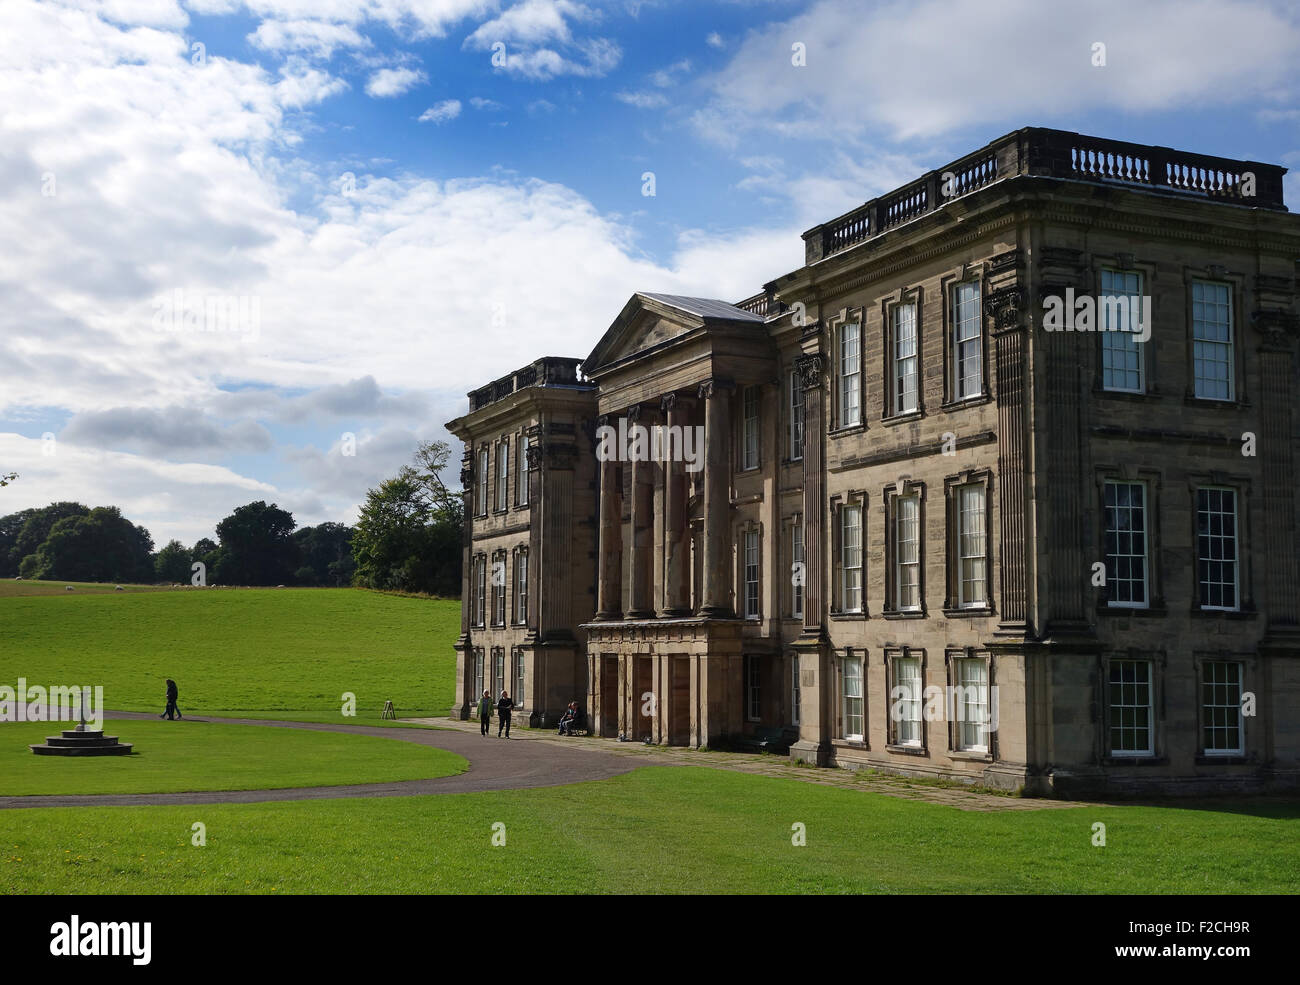 Calke Abbey Derbyshire country house stately home Uk - Stock Image